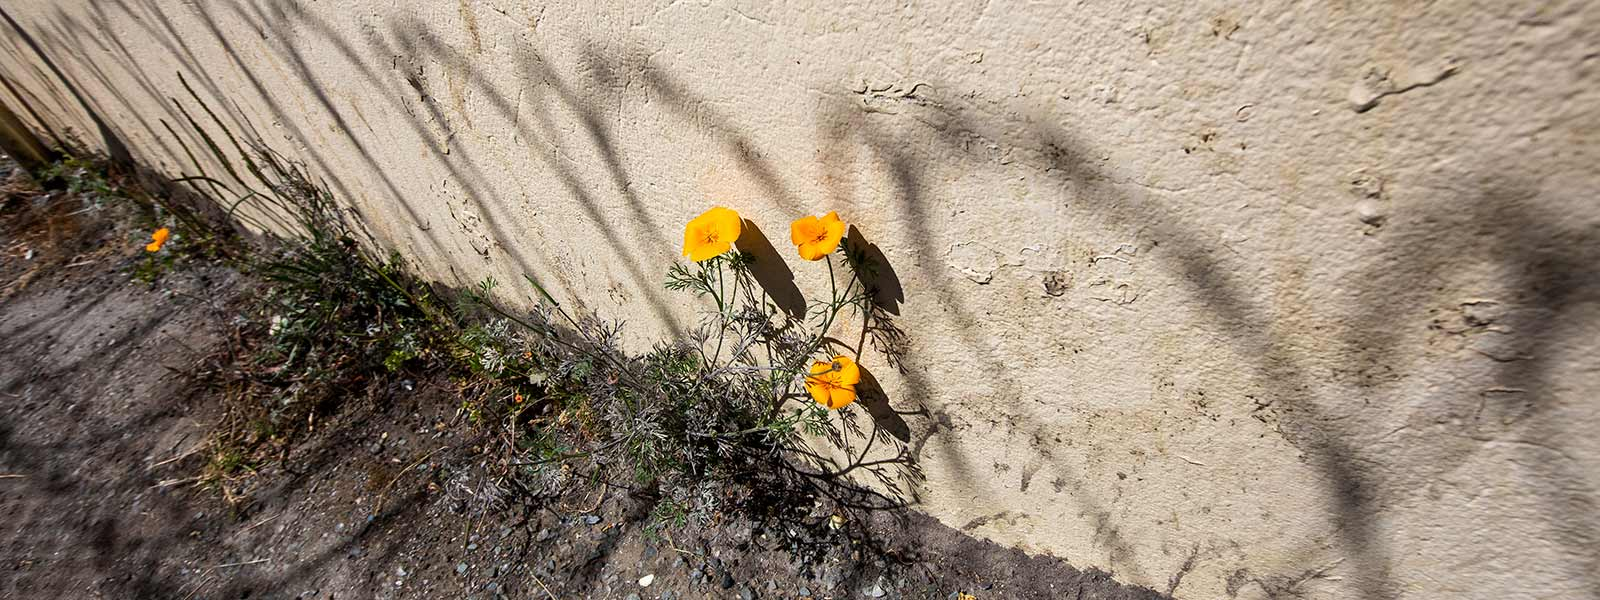 Flowers growin in the yard at San Quentin State Prison